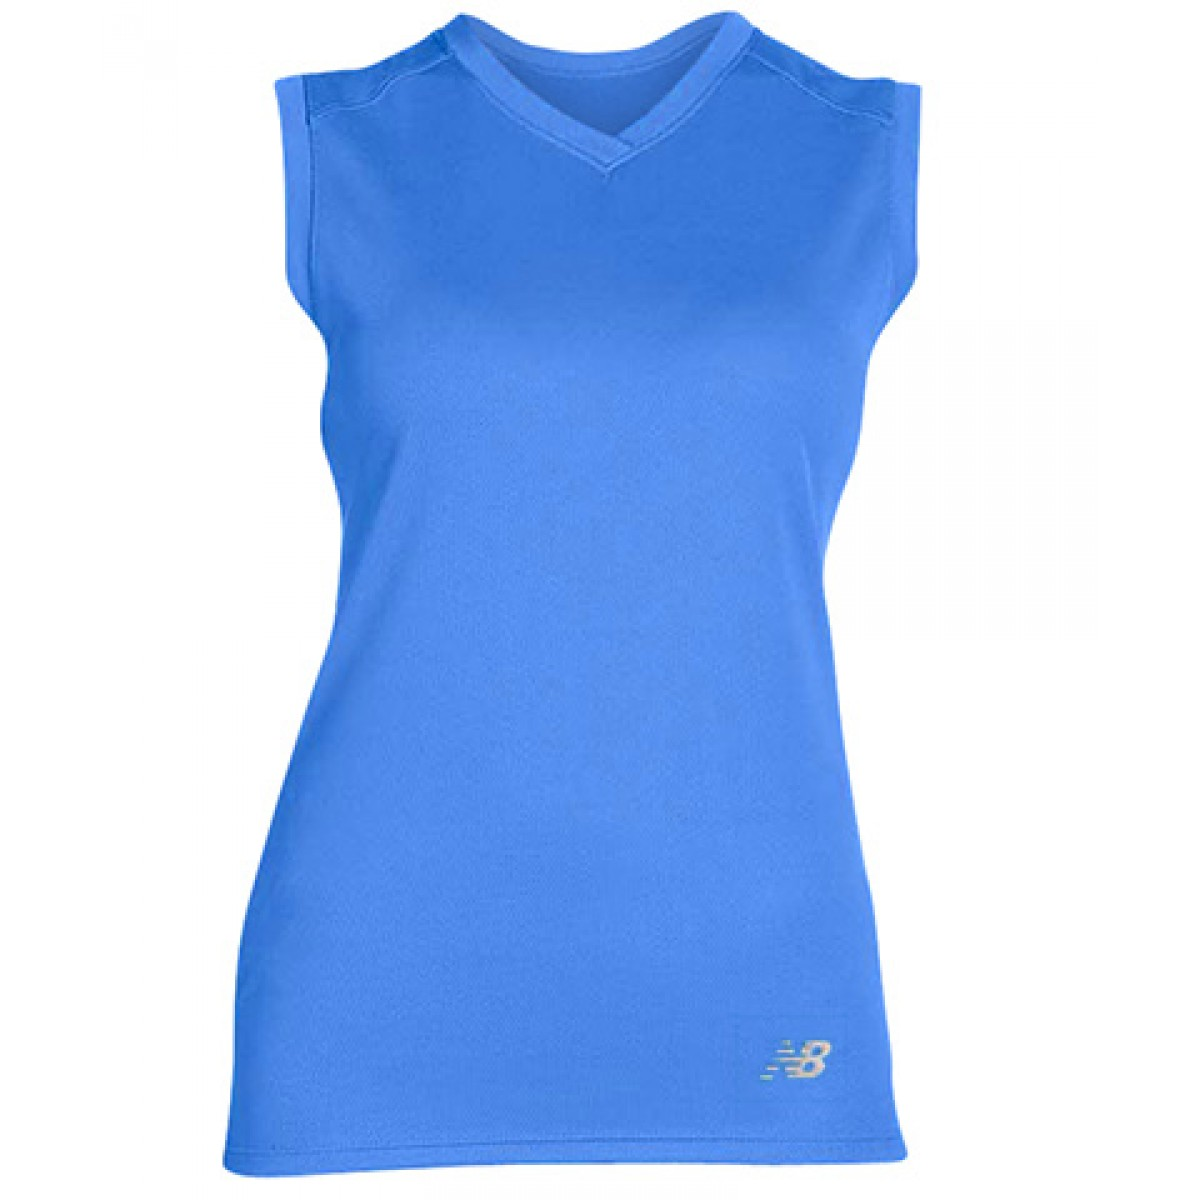 Ladies' Athletic V-Neck Performance T-Shirt-Blue-M